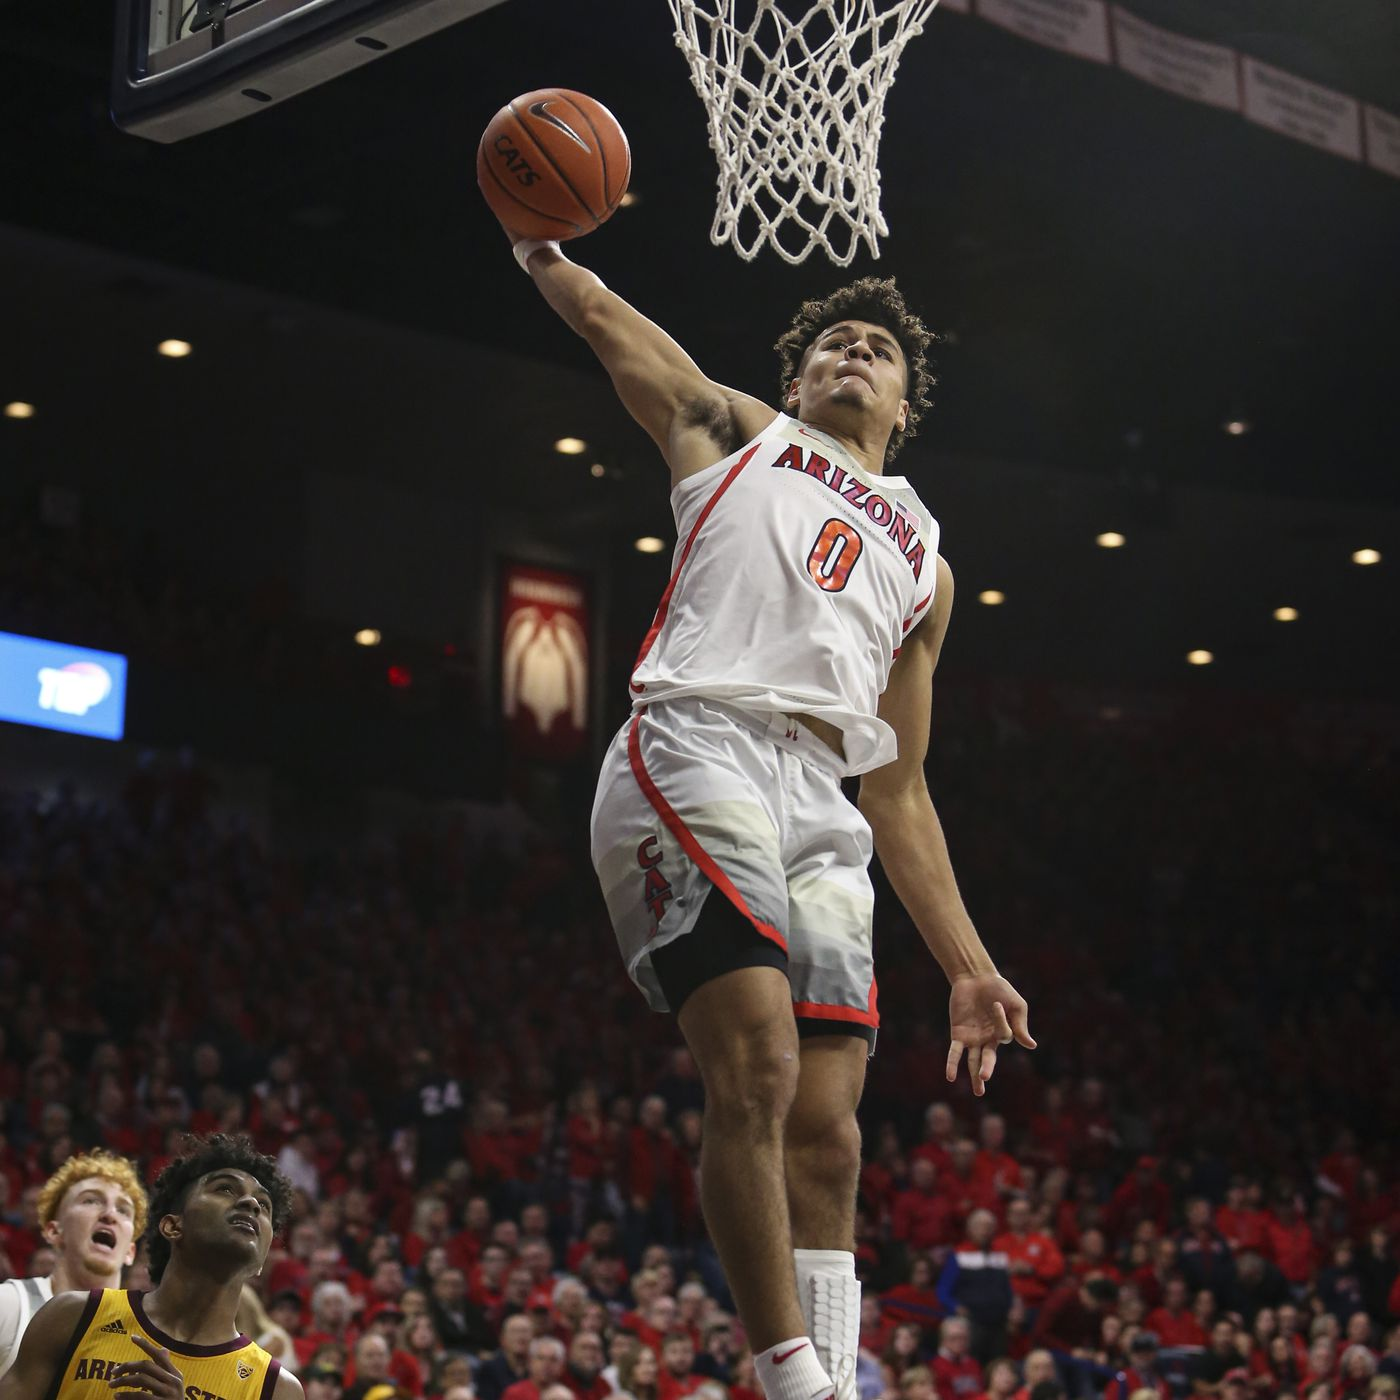 Potential 2020 Nba Draft Targets For The Spurs Josh Green